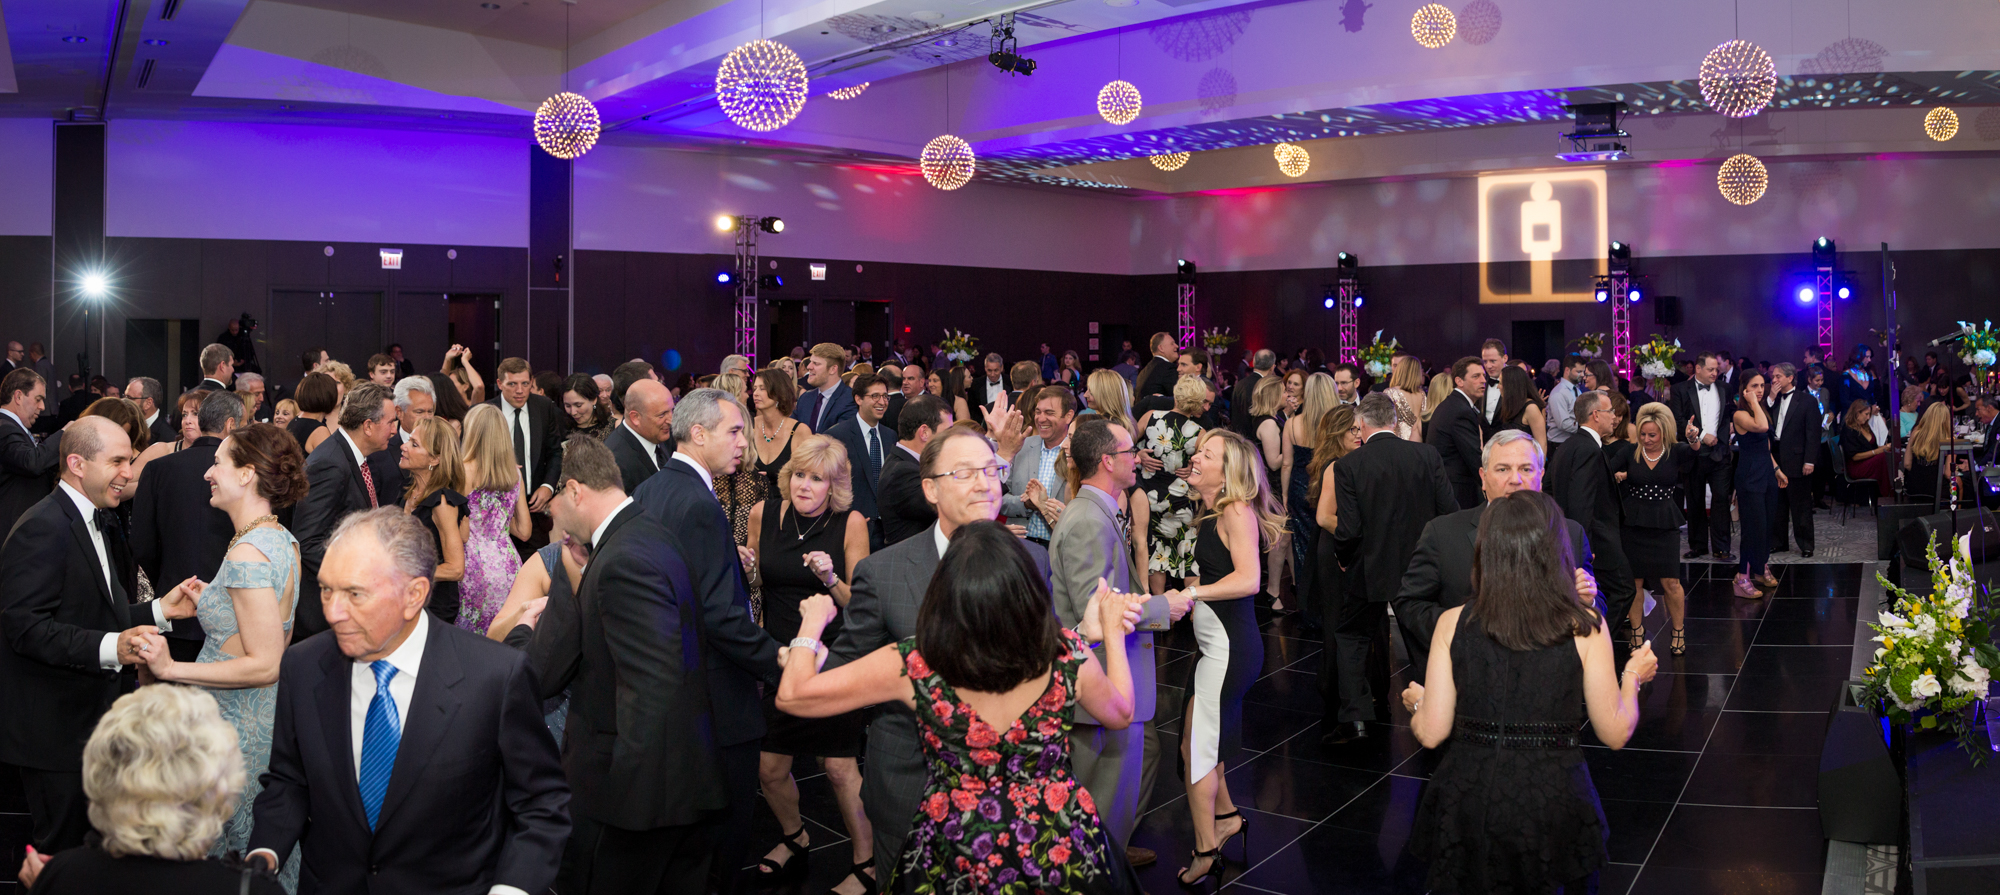 event photography corporate event photographers chicago